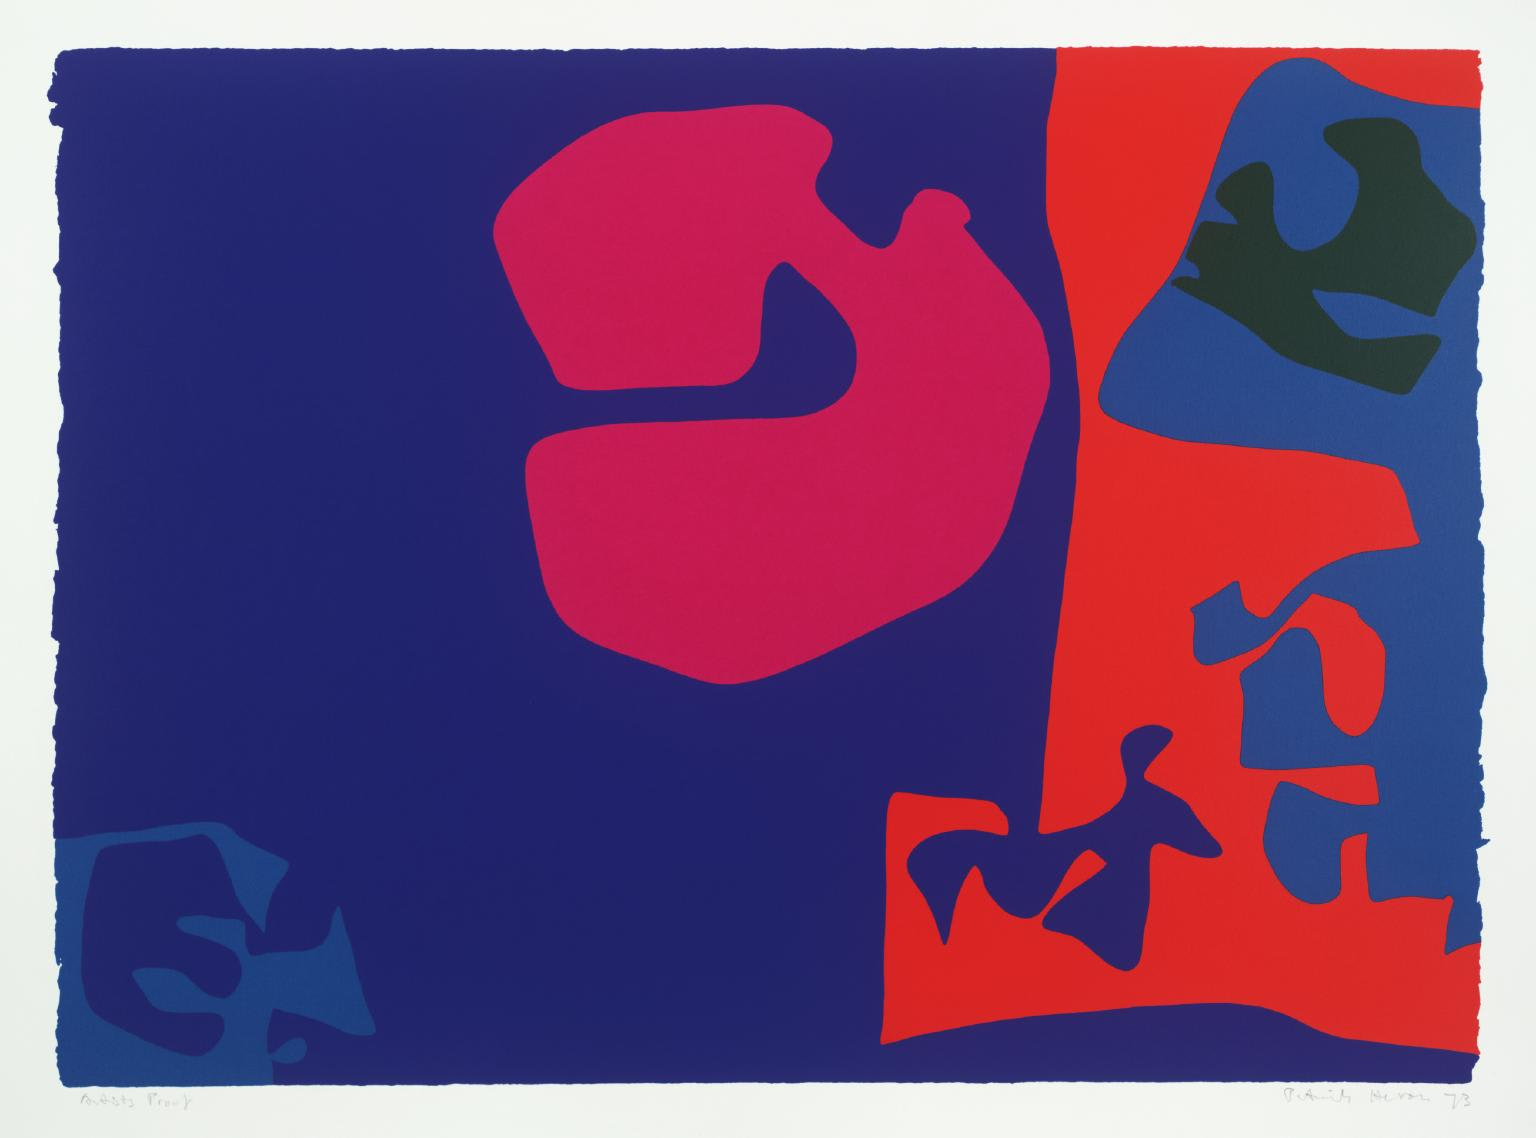 """<span class=""""link fancybox-details-link""""><a href=""""/artists/74-patrick-heron/works/1009-patrick-heron-january-1973-plate-17-1973/"""">View Detail Page</a></span><div class=""""artist""""><strong>Patrick Heron</strong></div> 1920 - 1999 <div class=""""title""""><em>January 1973: Plate 17</em>, 1973</div> <div class=""""signed_and_dated"""">signed and dated in pencil, verso is the publishers stamp<br /> from the edition of 72</div> <div class=""""medium"""">screenprint</div> <div class=""""dimensions"""">68 x 92.3cm</div>"""